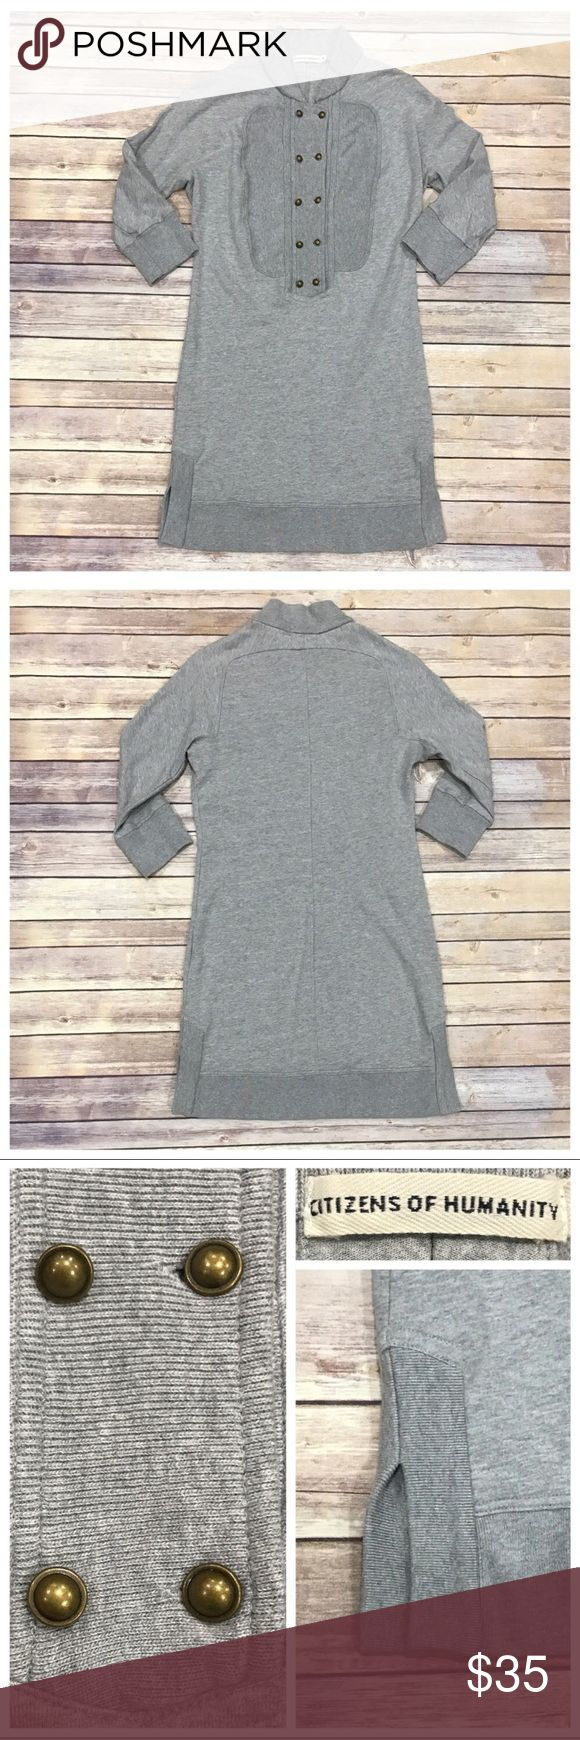 """Dress/Tunic by Citizens of Humanity Vintage grey 100% cotton sweatshirt dress. Pullover styling. 3/4 length sleeves. Snug fit. 34"""" bust. 35"""" length. 4"""" side slit. Runs small. No trades. No off site sales. Price firm unless bundled. Citizens of Humanity Dresses"""